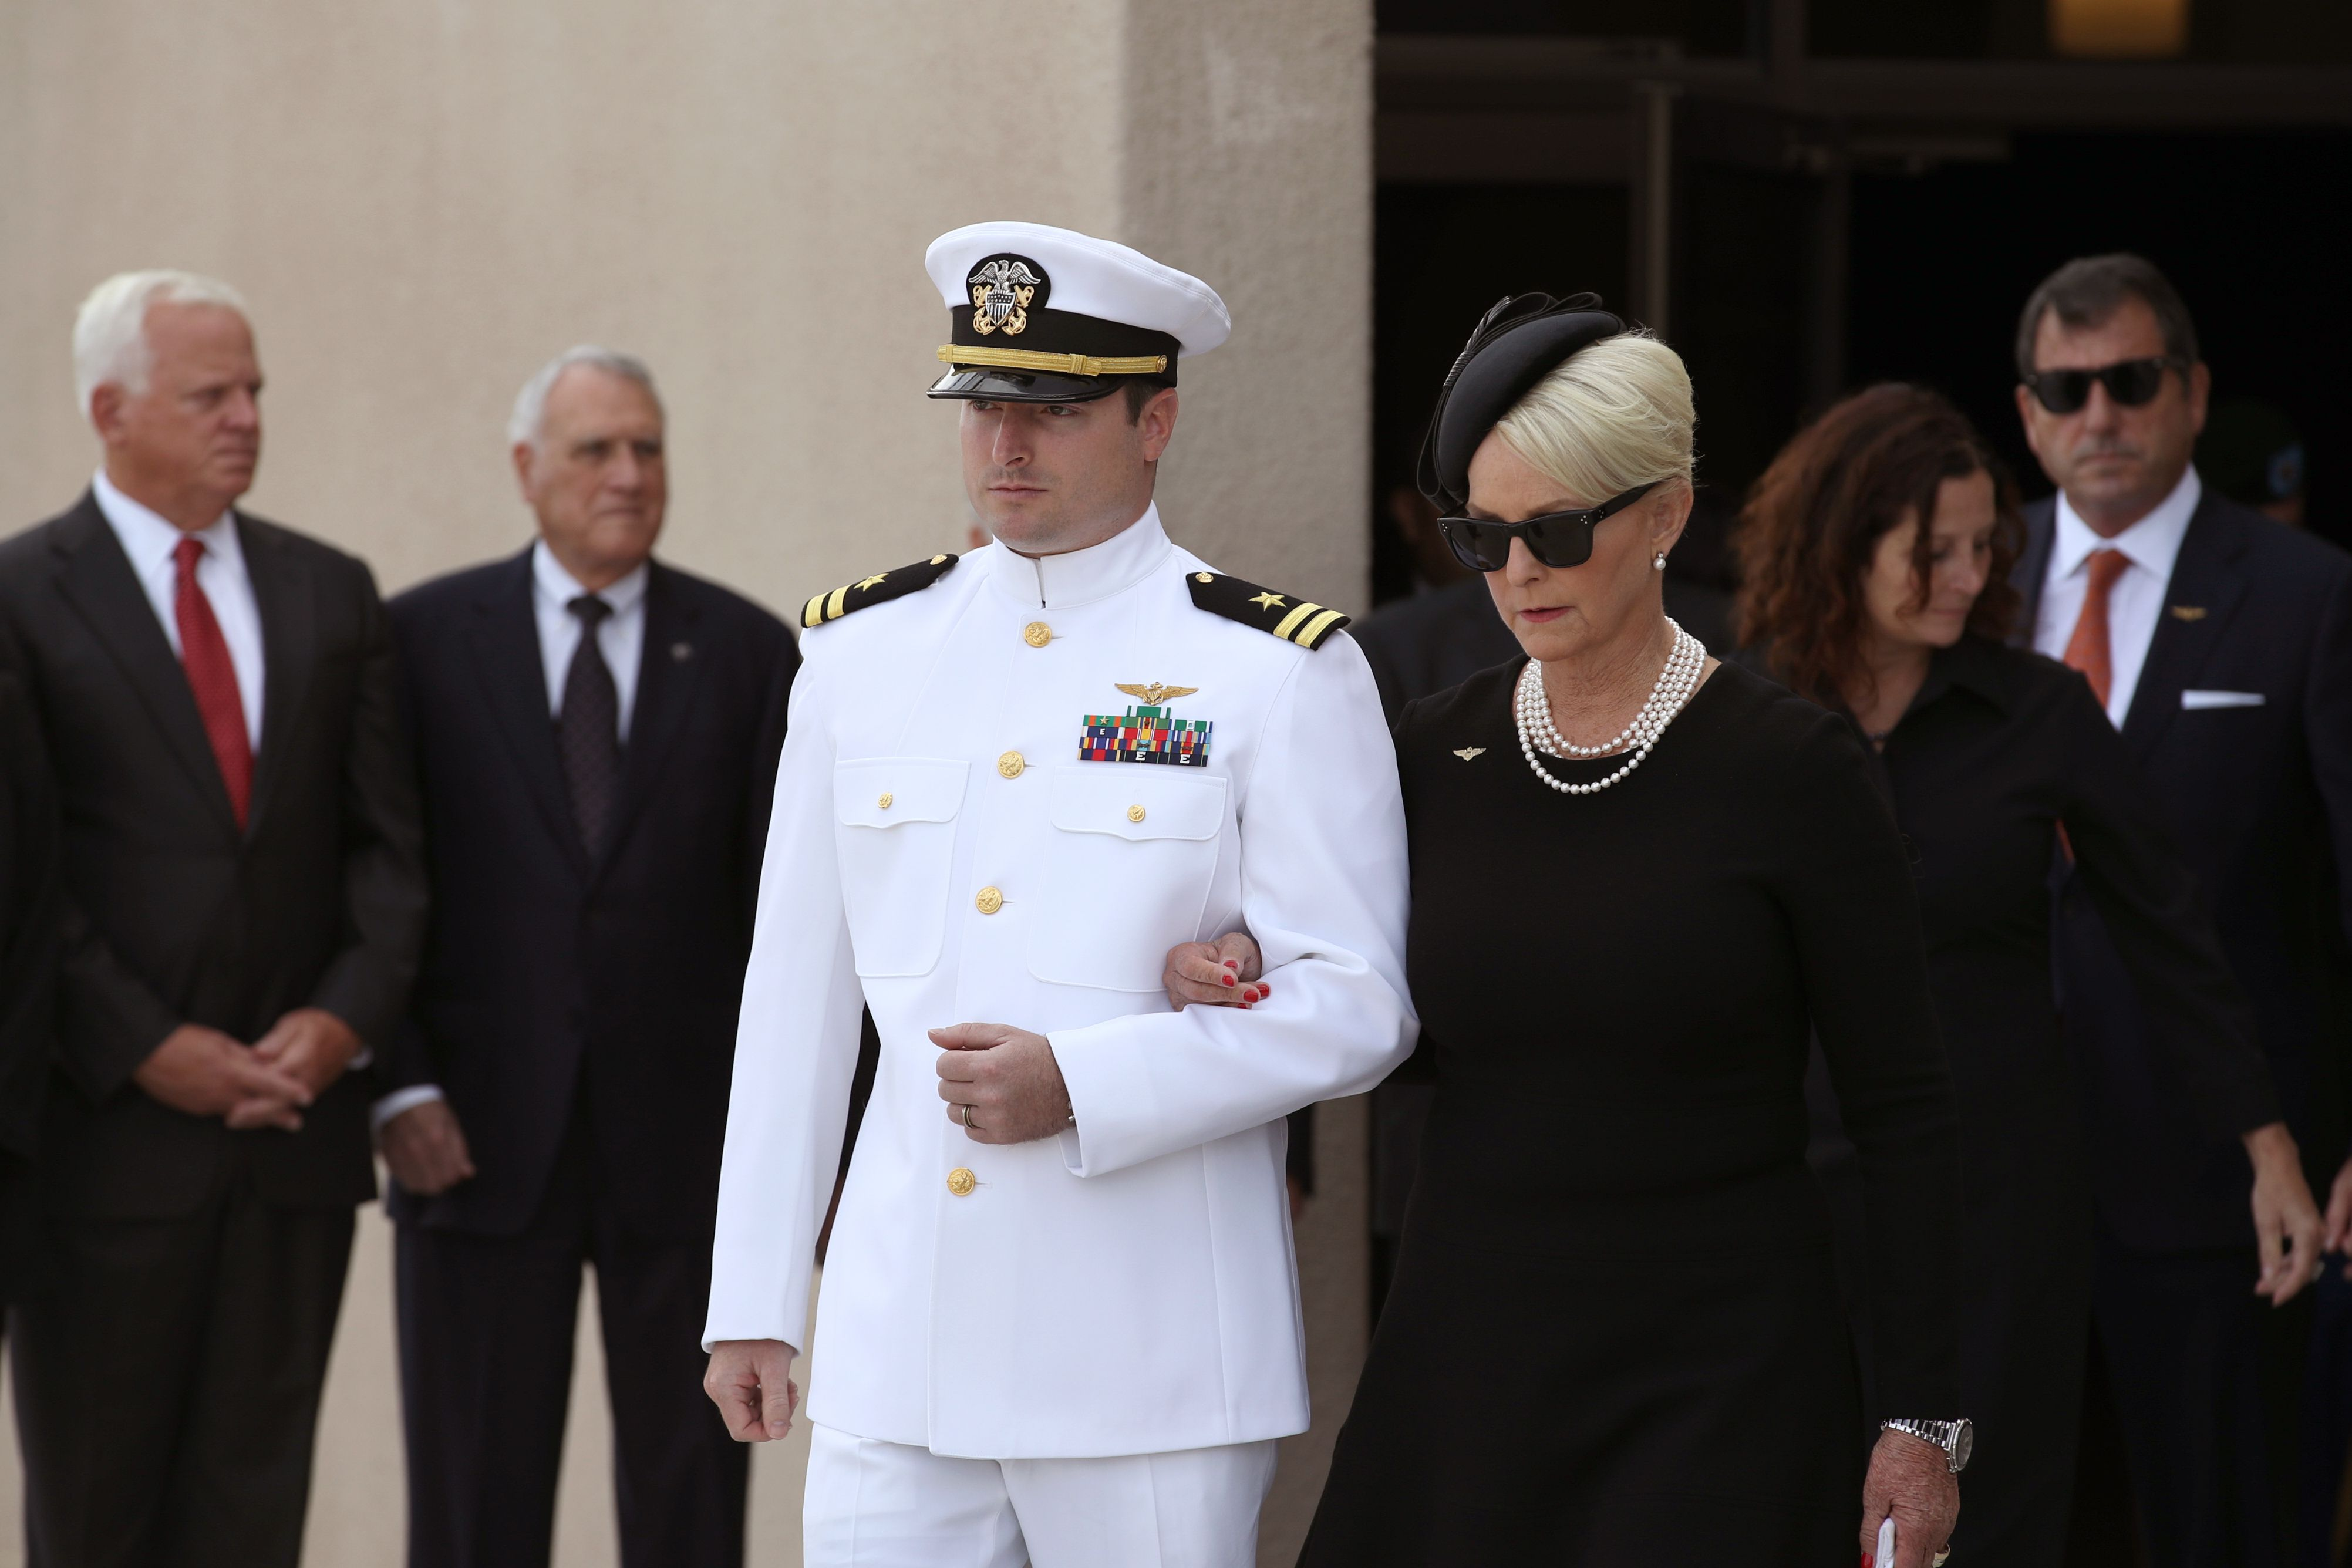 Cindy McCain in all black at funeral